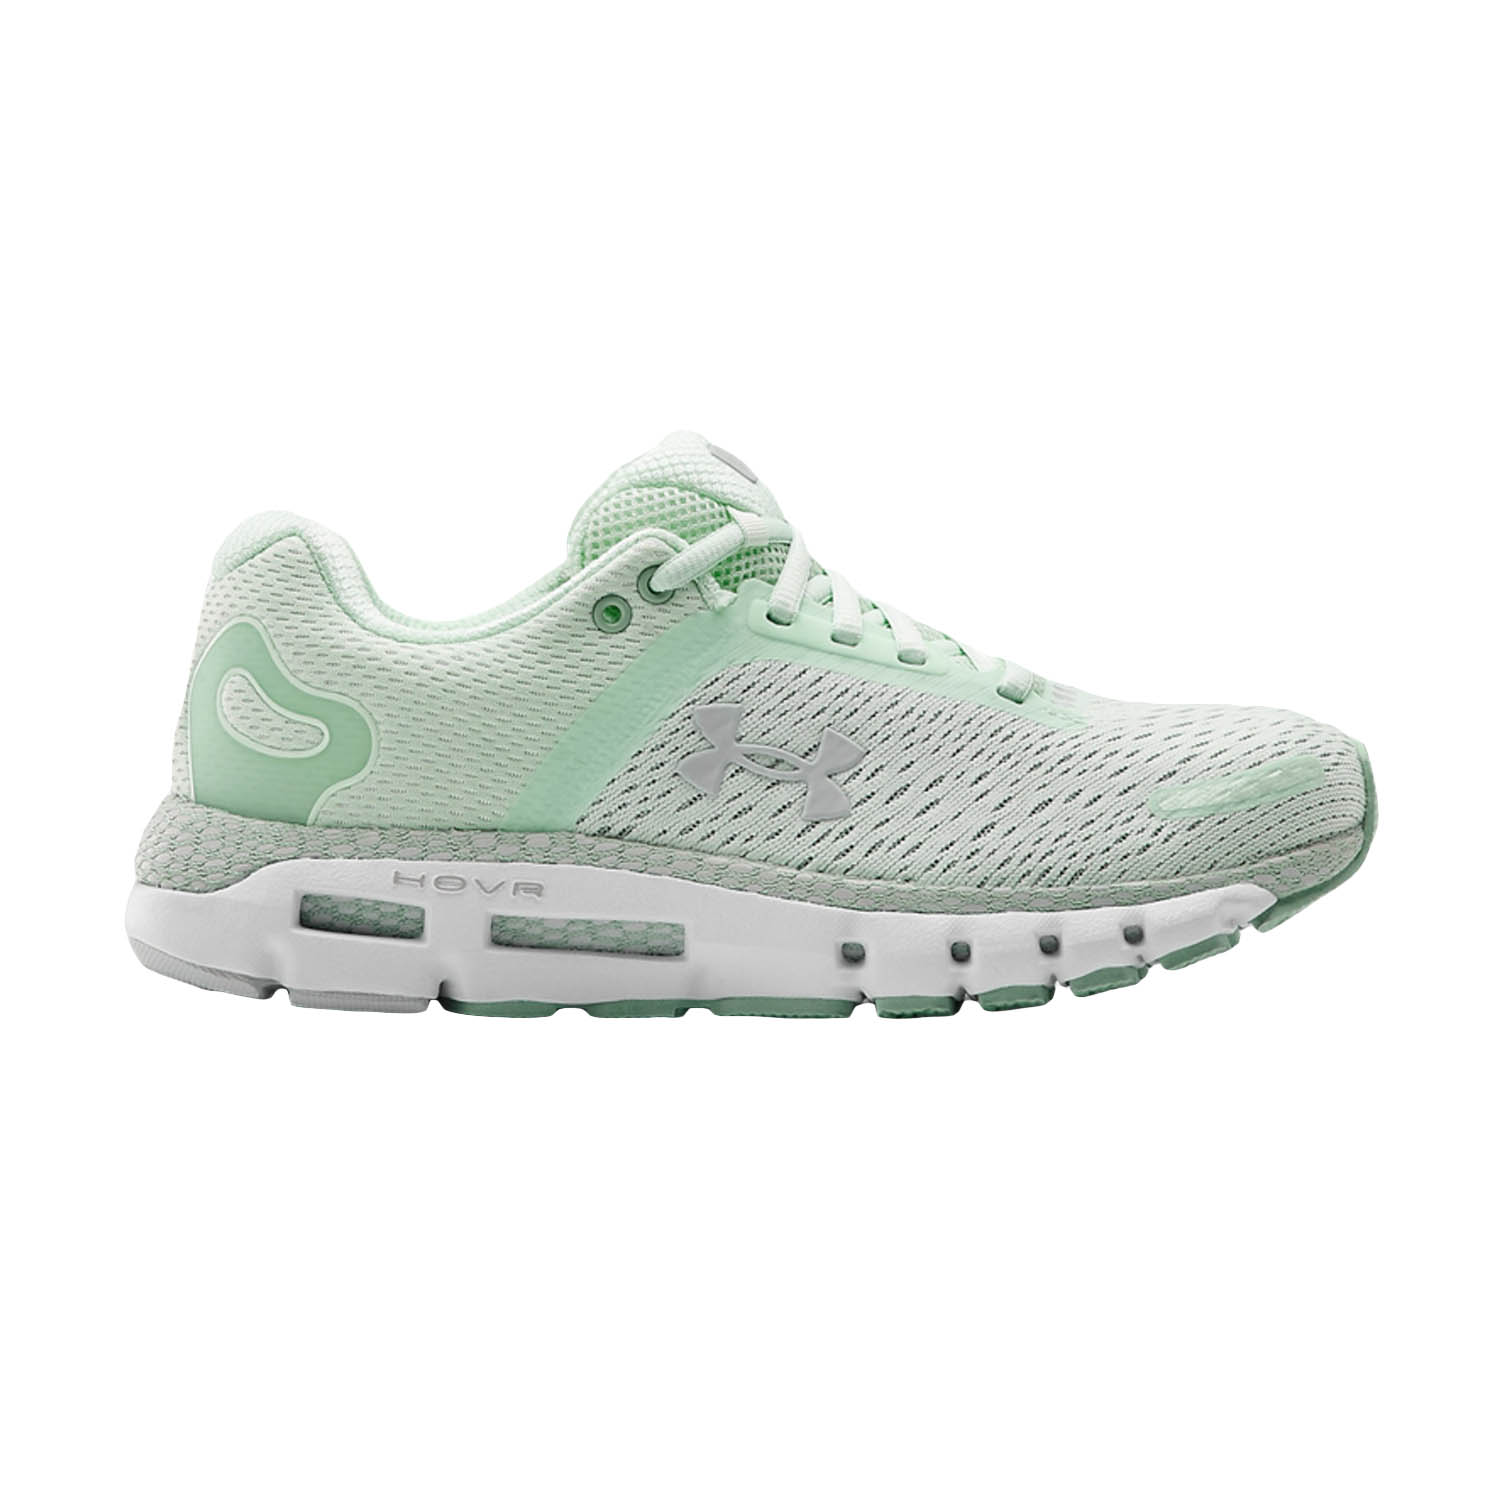 Under Armour Hovr Infinite 2 - Seaglass Blue/White/Halo Gray